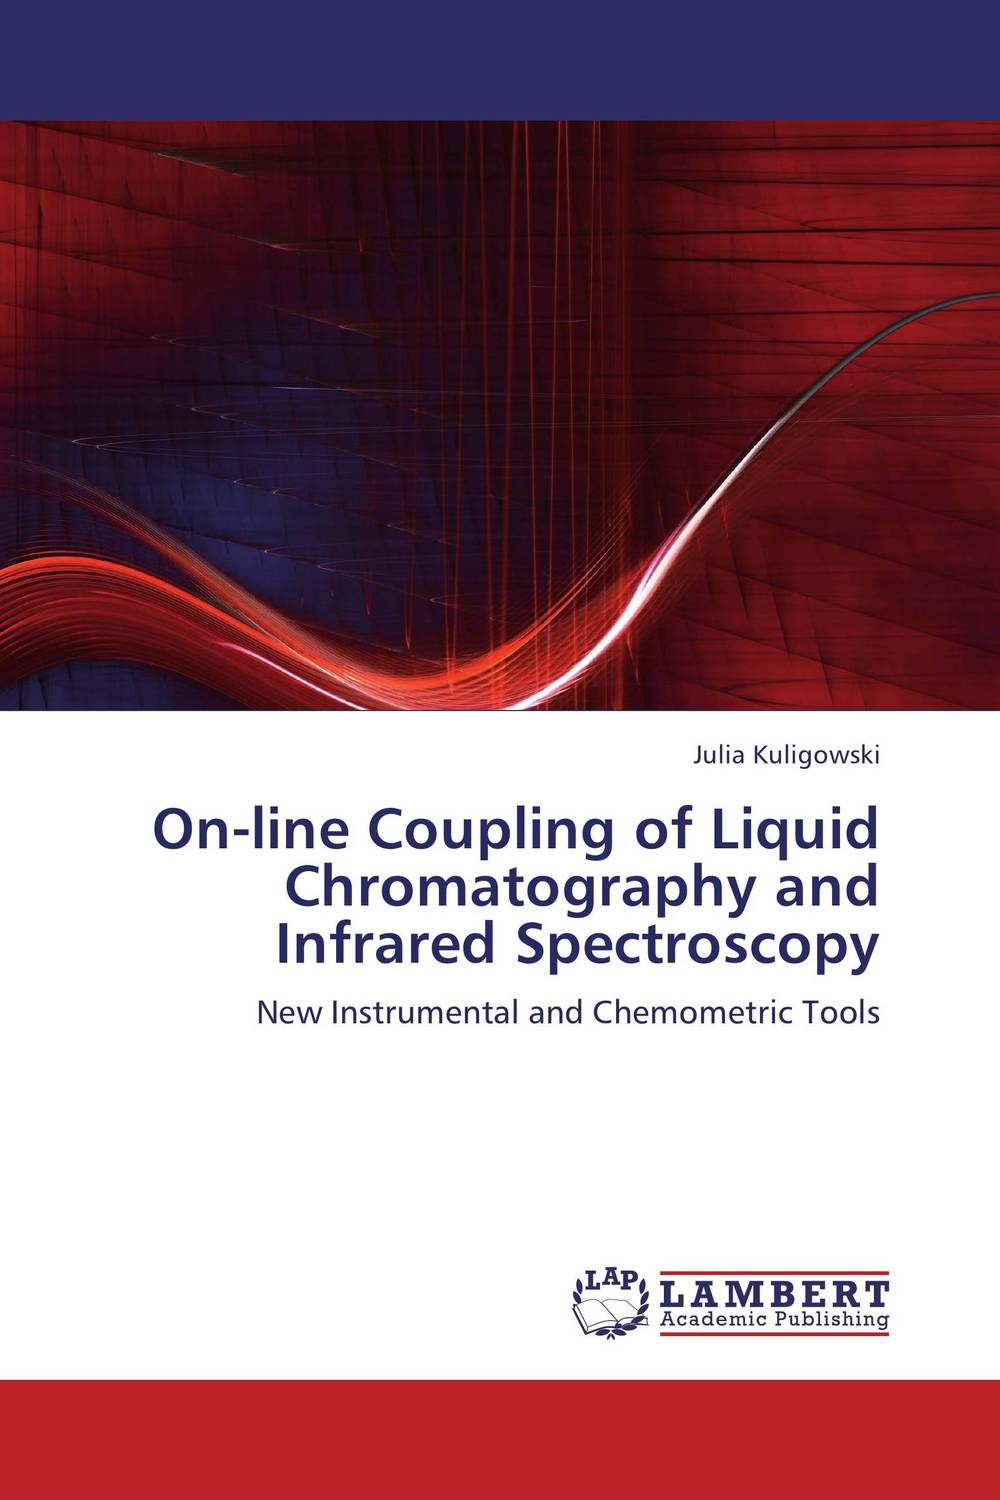 On-line Coupling of Liquid Chromatography and Infrared Spectroscopy fda 489 replaceable core filter driers are designed to be used in the liquid and suction lines of air conditioning systems